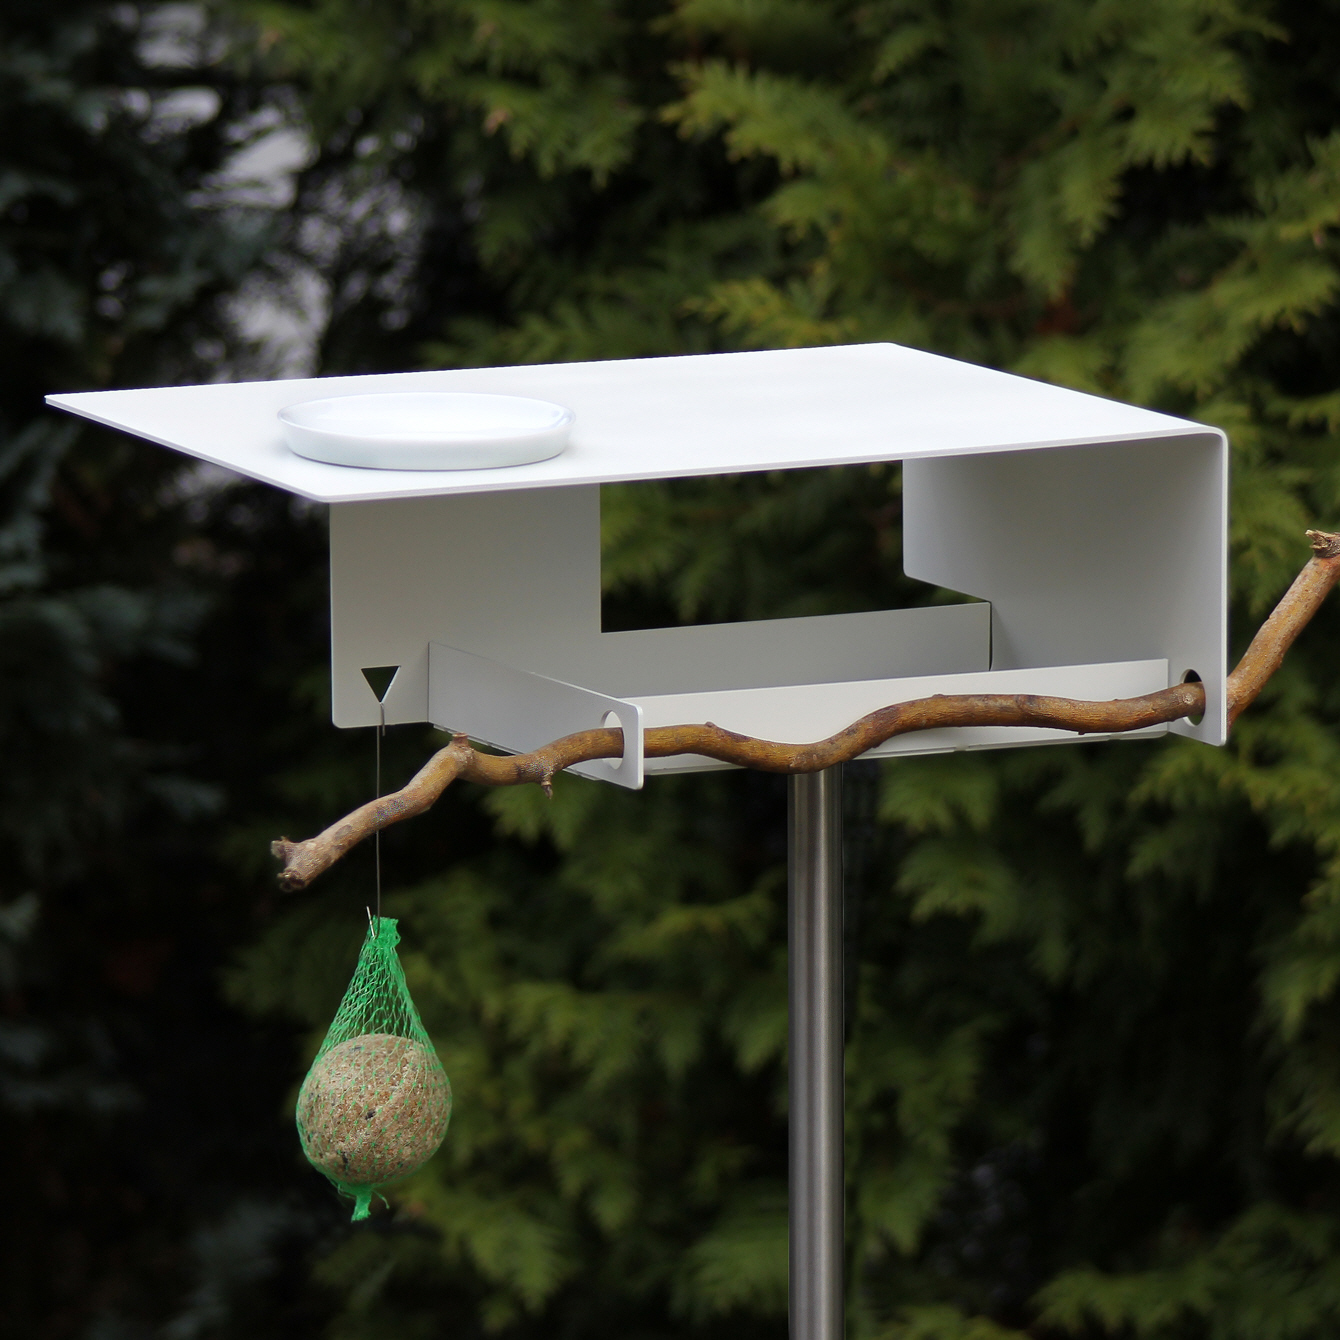 Contemporary Bird Table Pusat Hobi